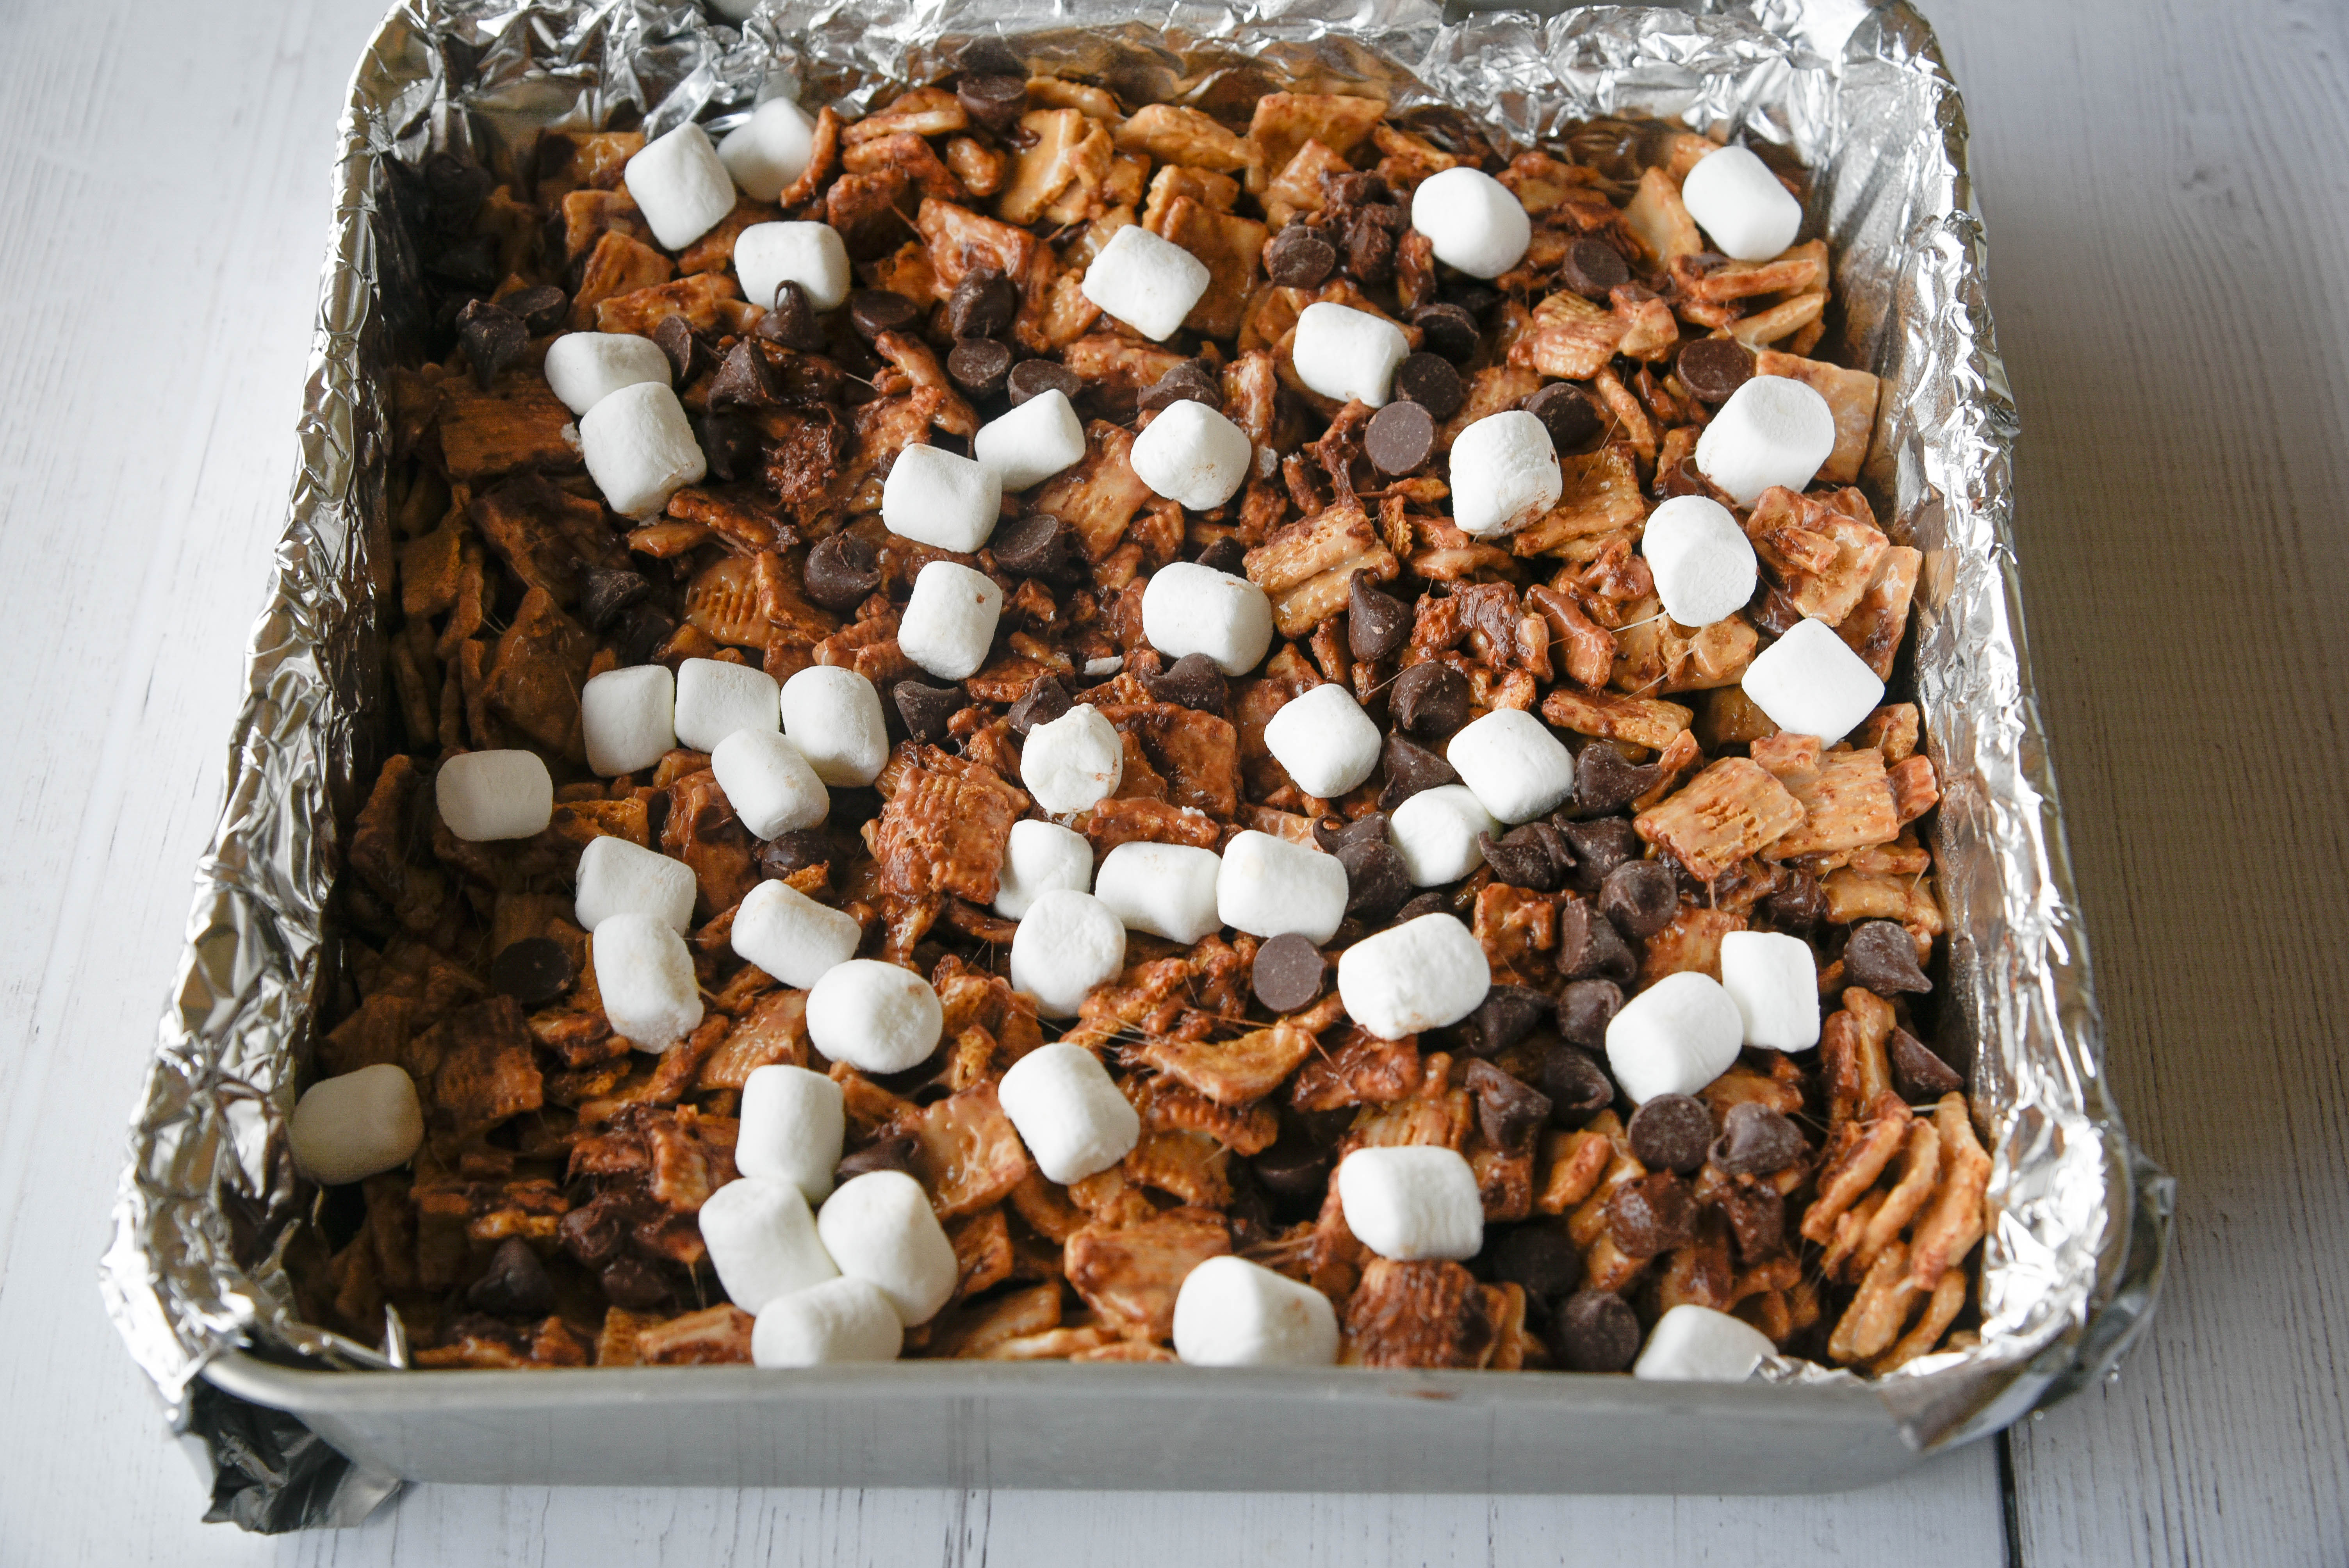 cereal, marshmallows and chocolate chips in a foil-lined pan.